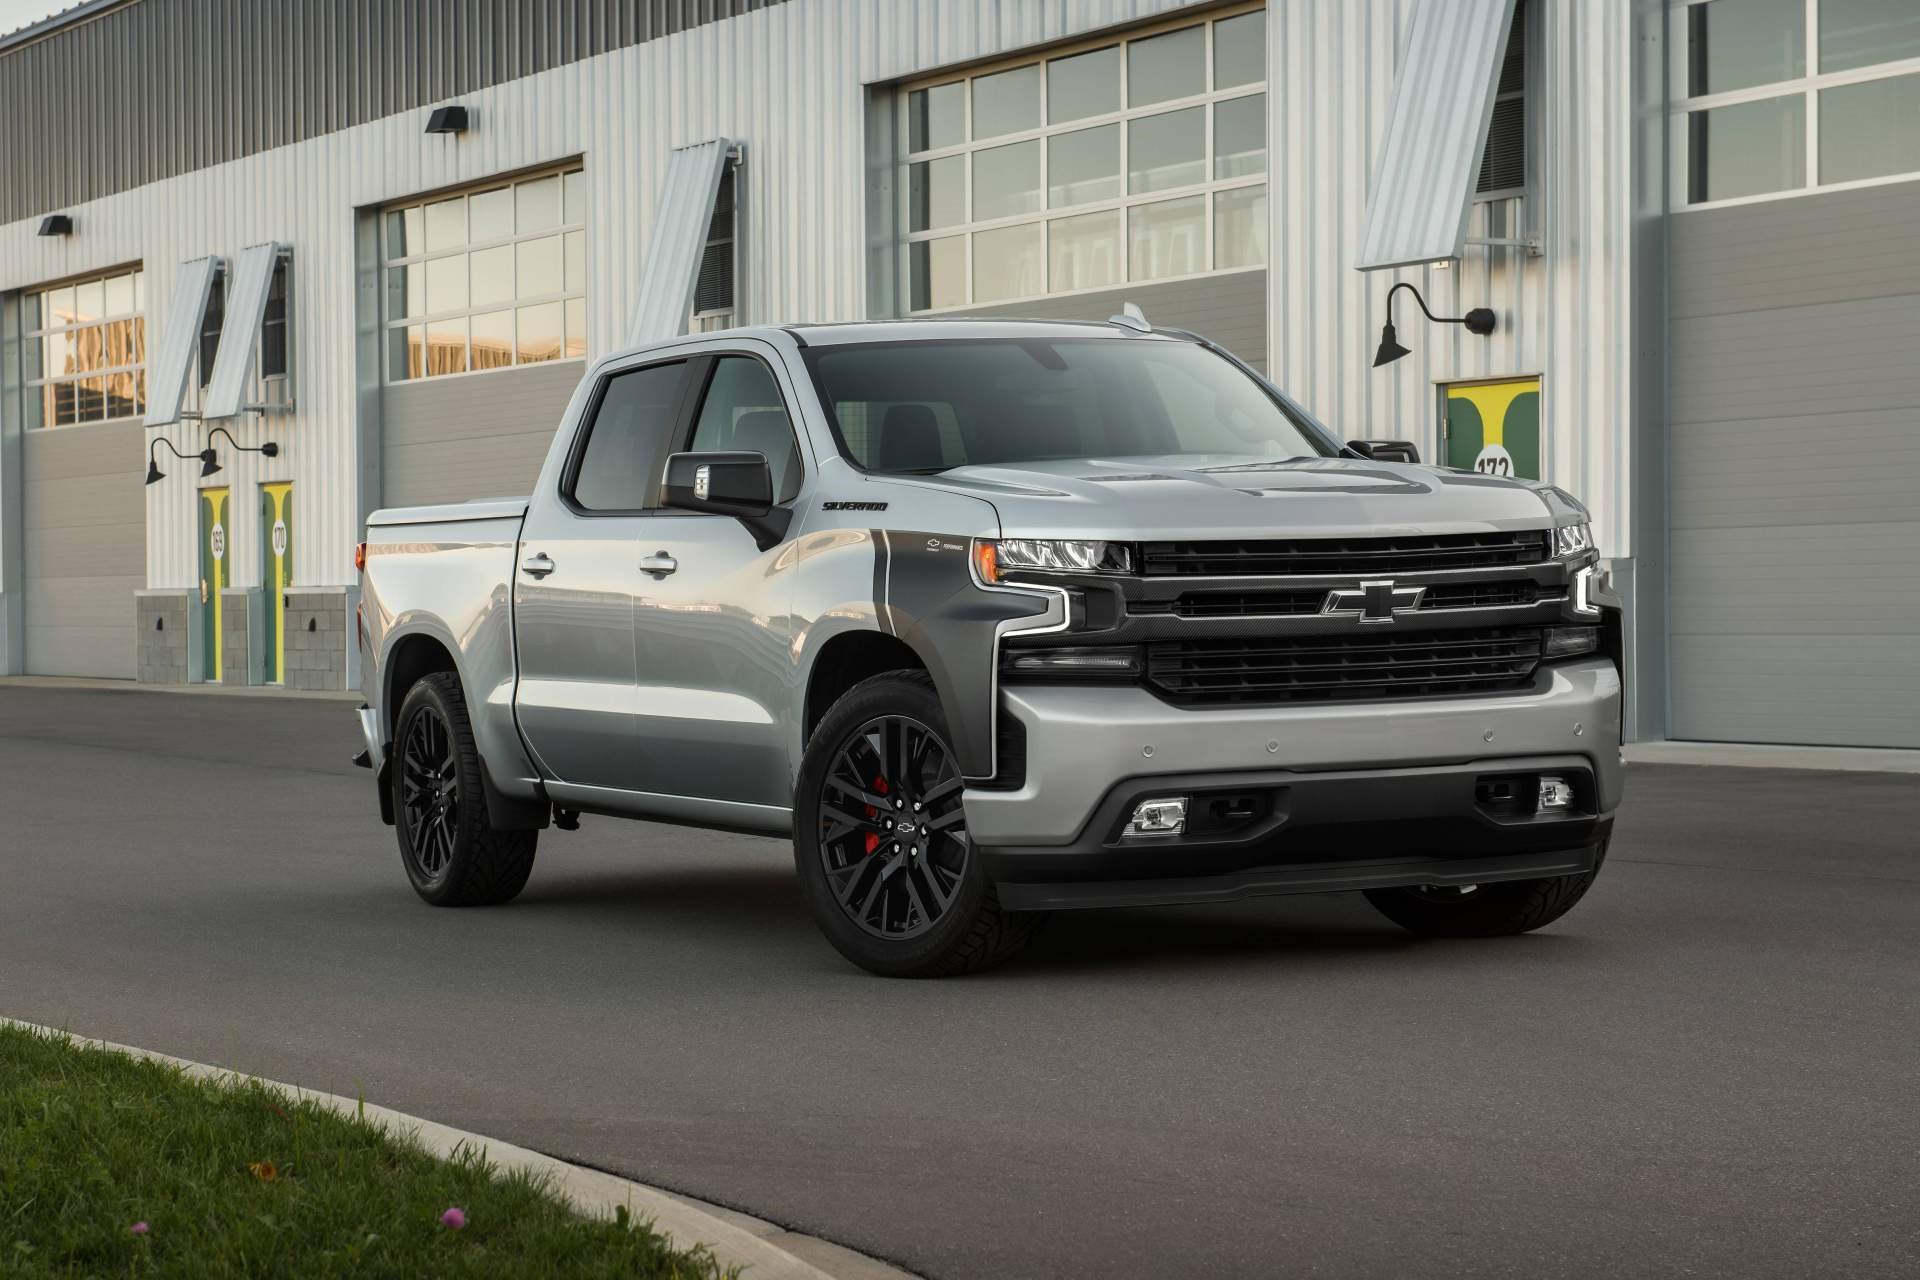 New 2019 Chevrolet-Silverado 2500HD Work Truck Silverado 2500HD Work Truck for sale $40,300 at M and V Leasing in Brooklyn NY 11223 1